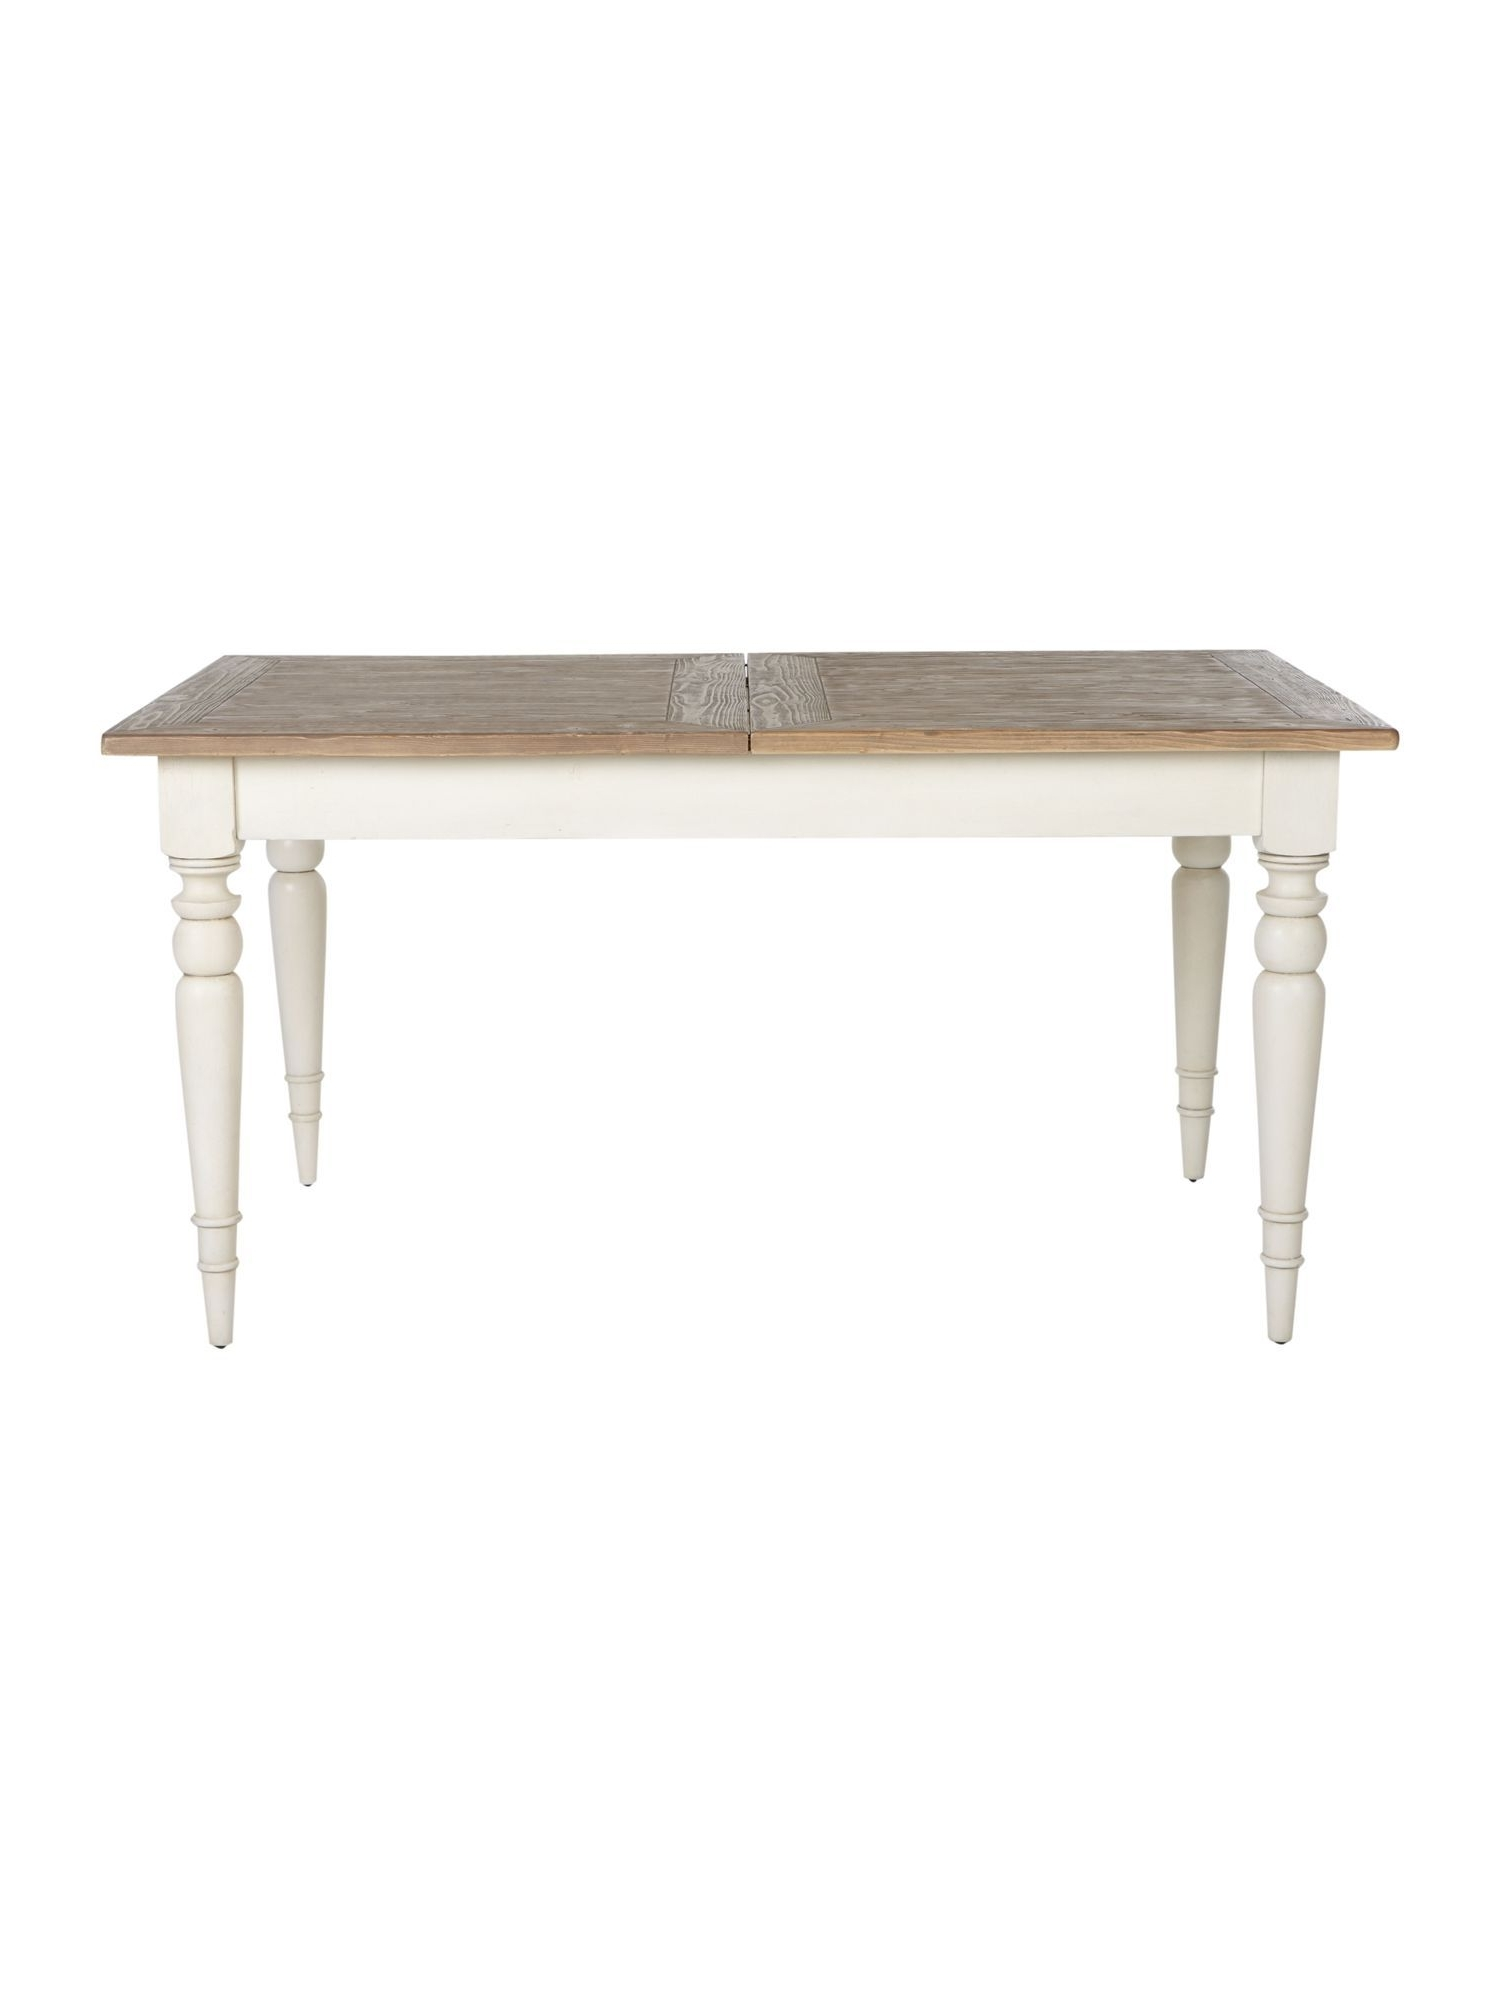 Shabby Chic Willow 155Cm Extending Dining Table – House Of Fraser Intended For Trendy Shabby Chic Extendable Dining Tables (View 2 of 25)